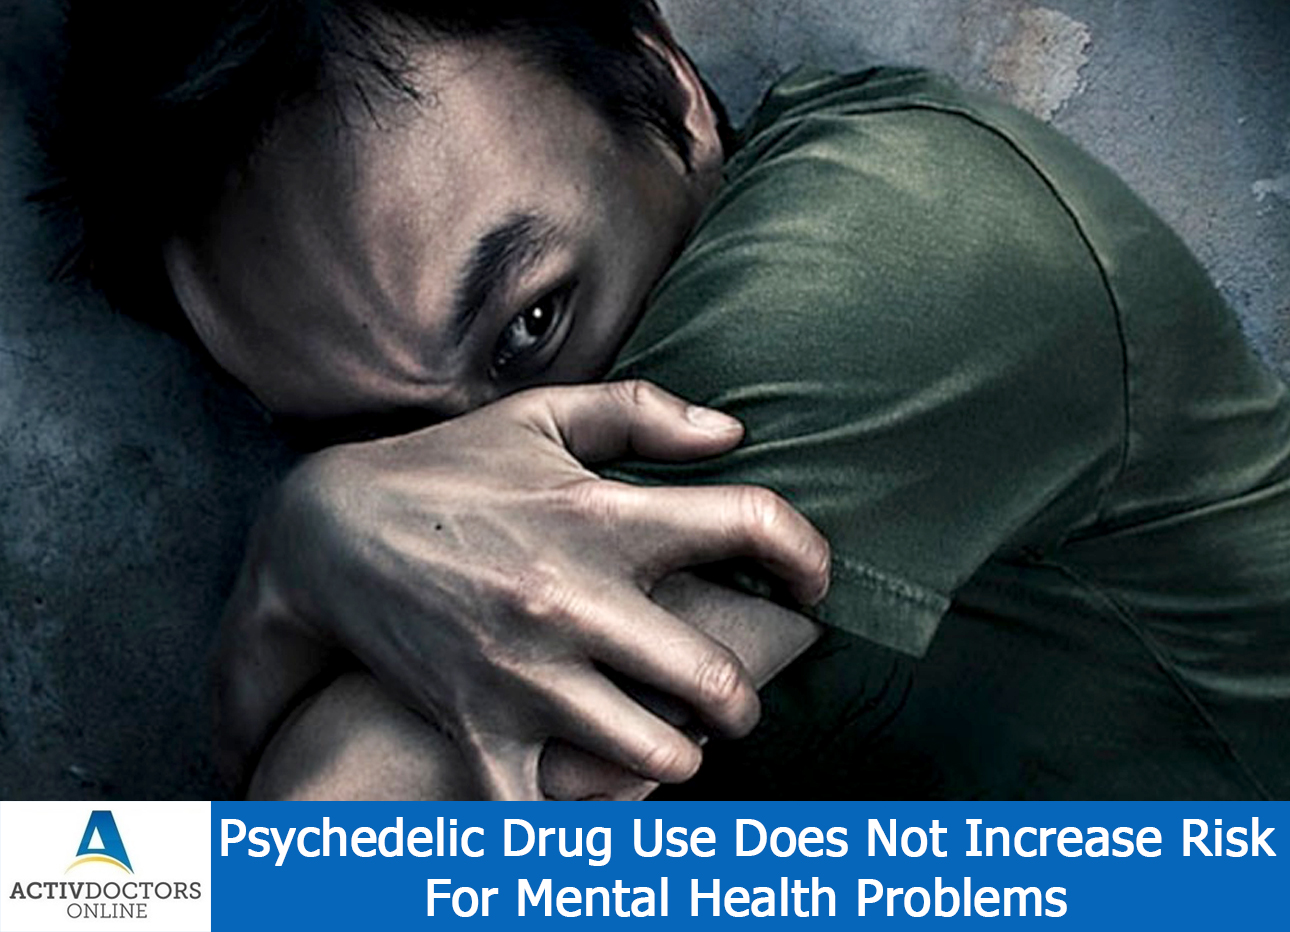 Psychedelic Drug Use Does Not Increase Risk For Mental Health Problems